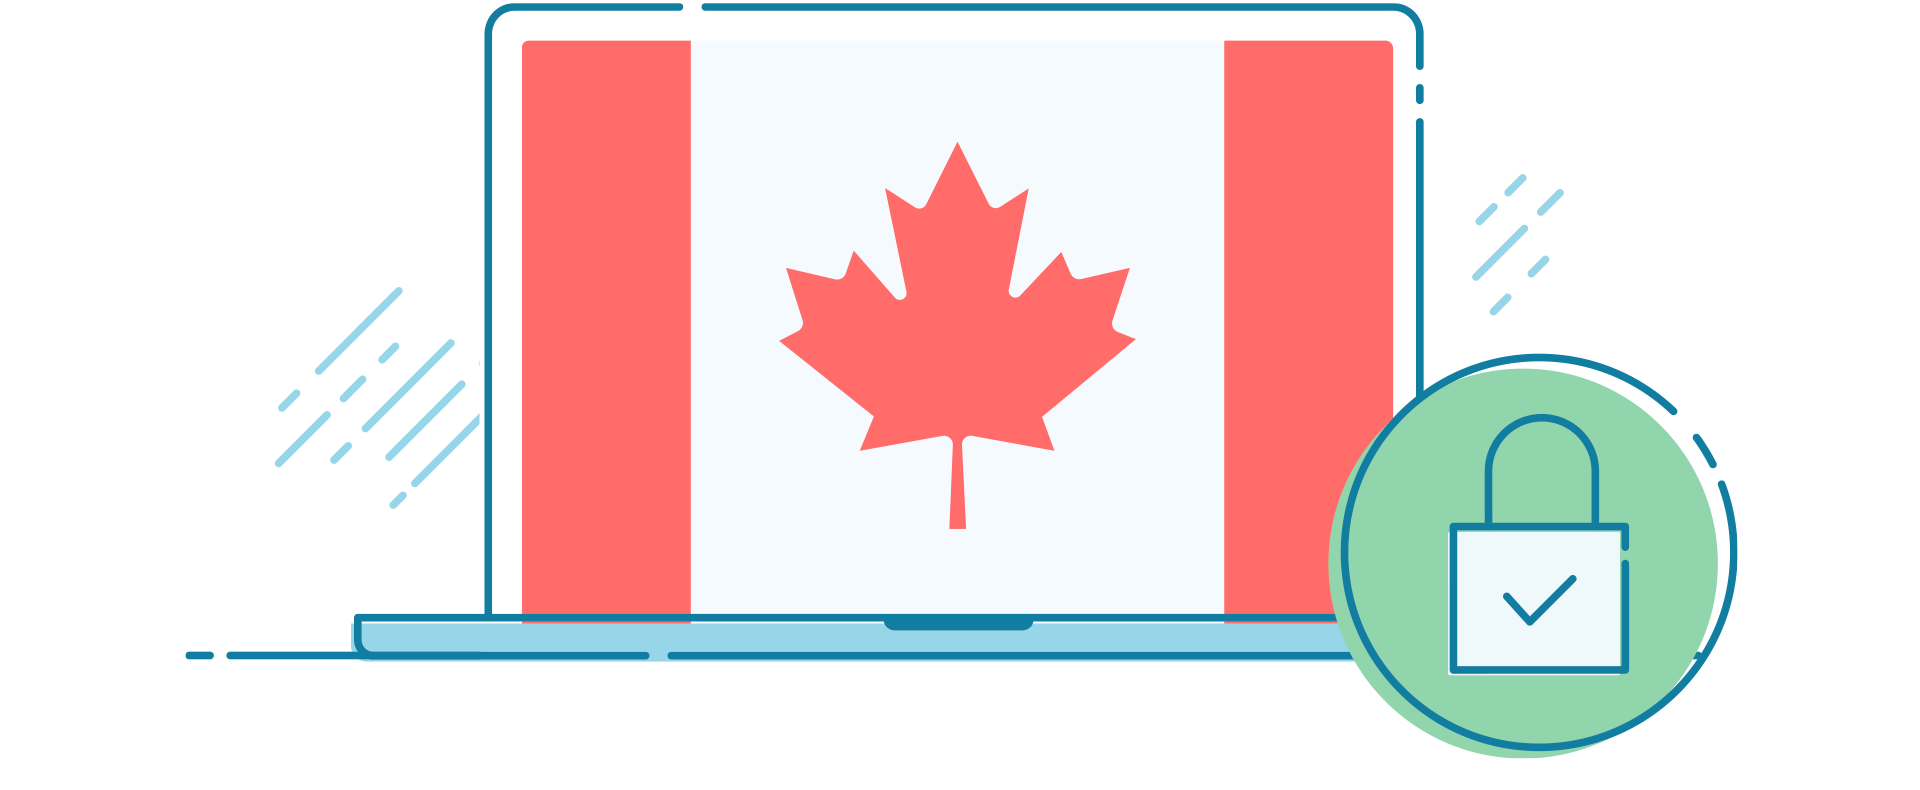 A Canada flag on a laptop screen with a secure padlock icon.